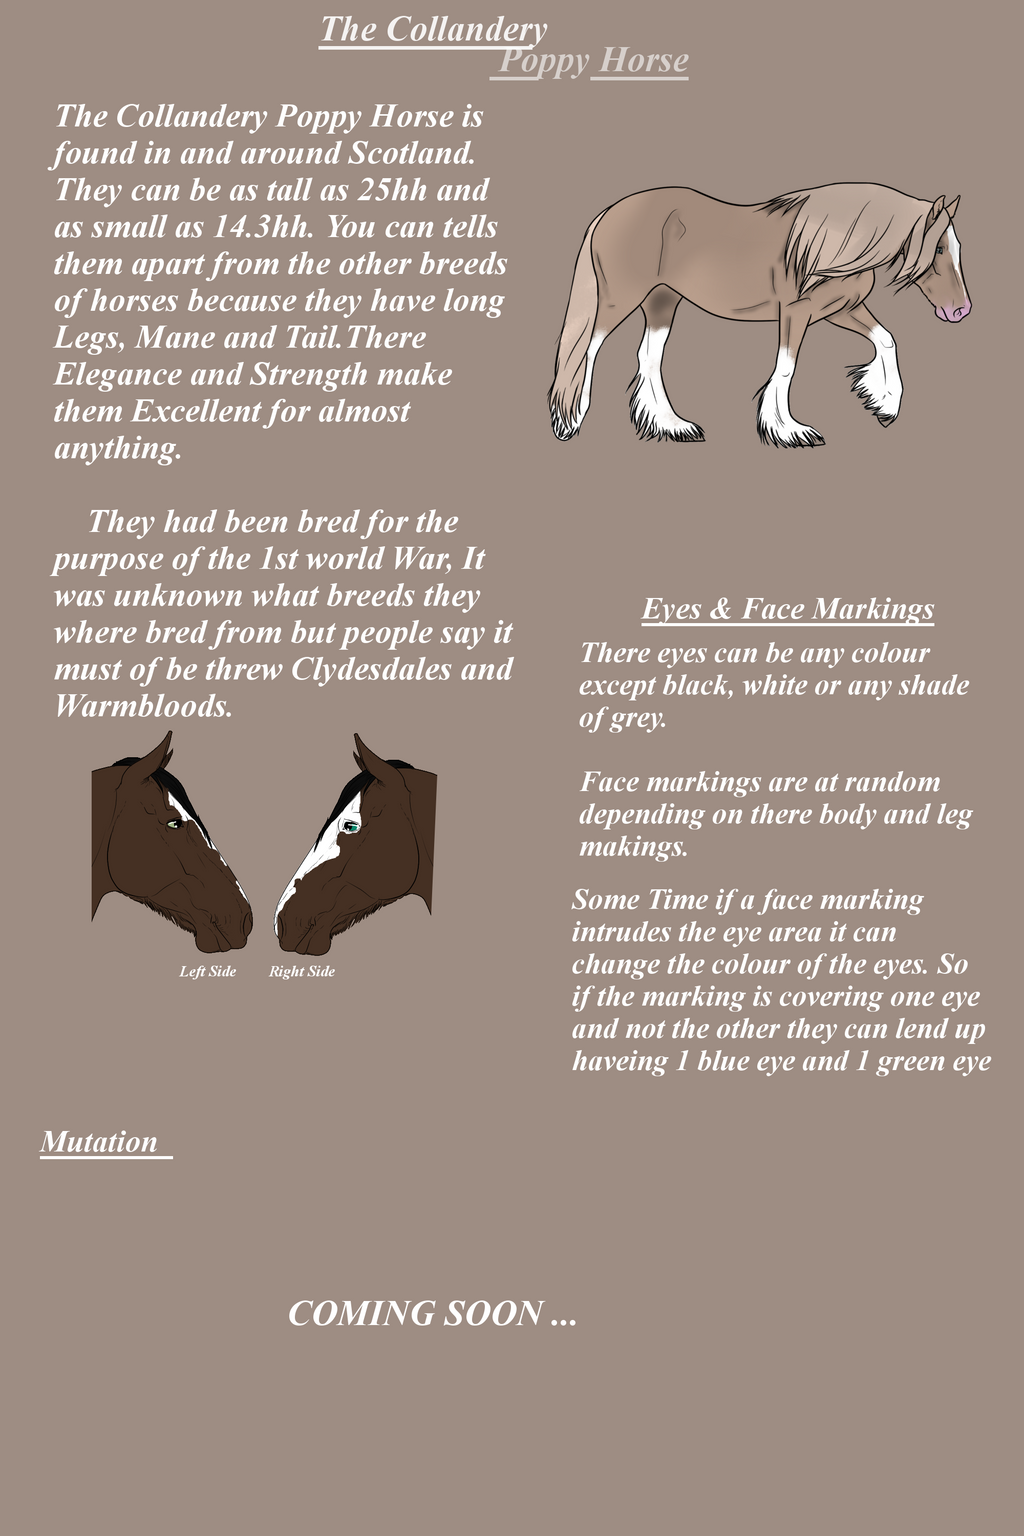 The Collandery Poppy Horse Breed Sheet by NorthernMyth